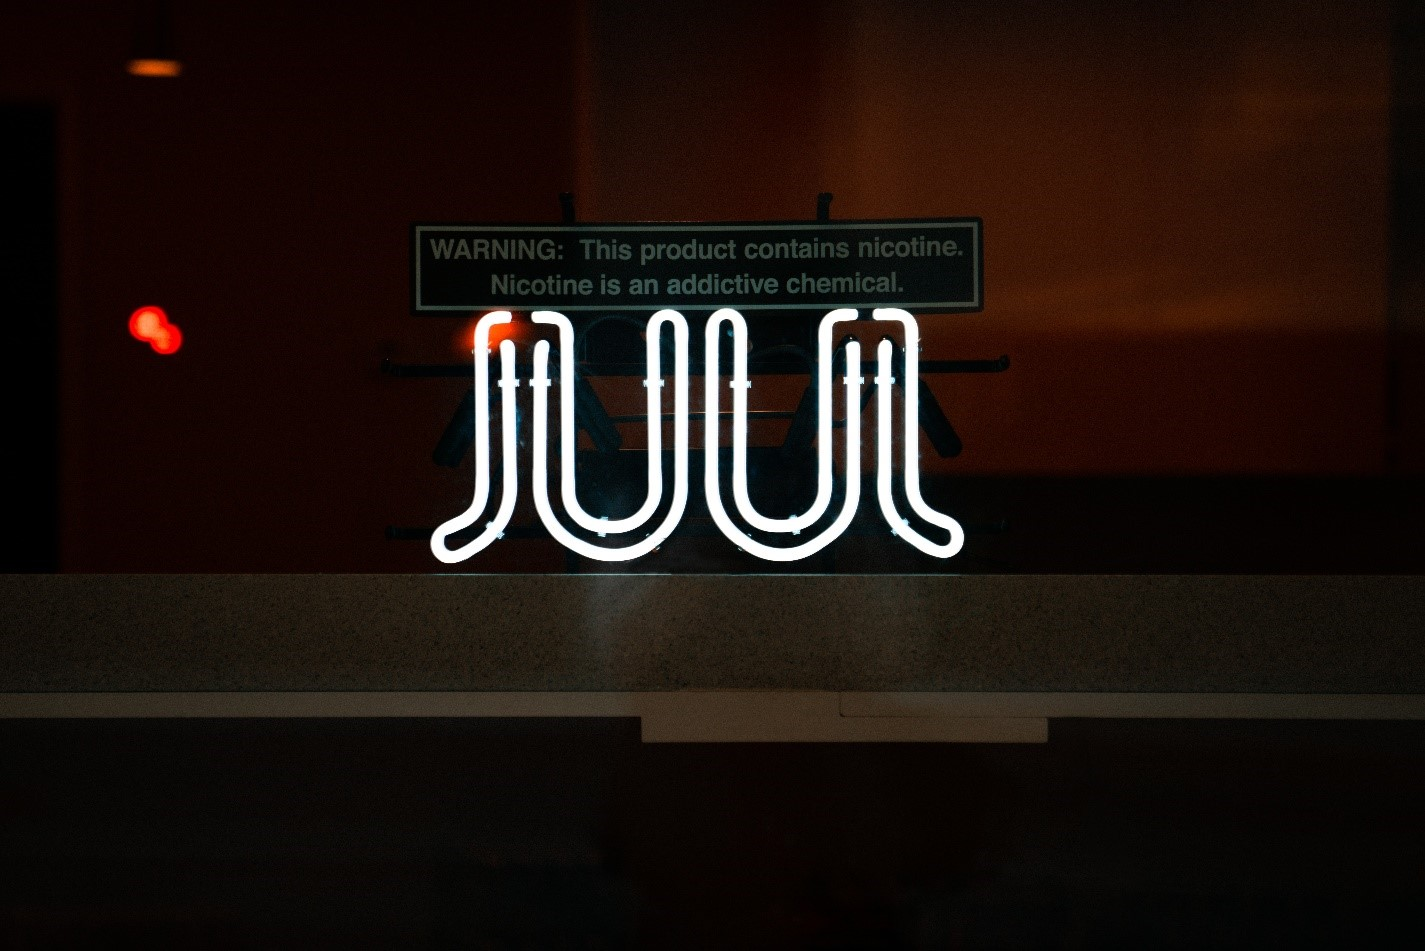 juul warning sign